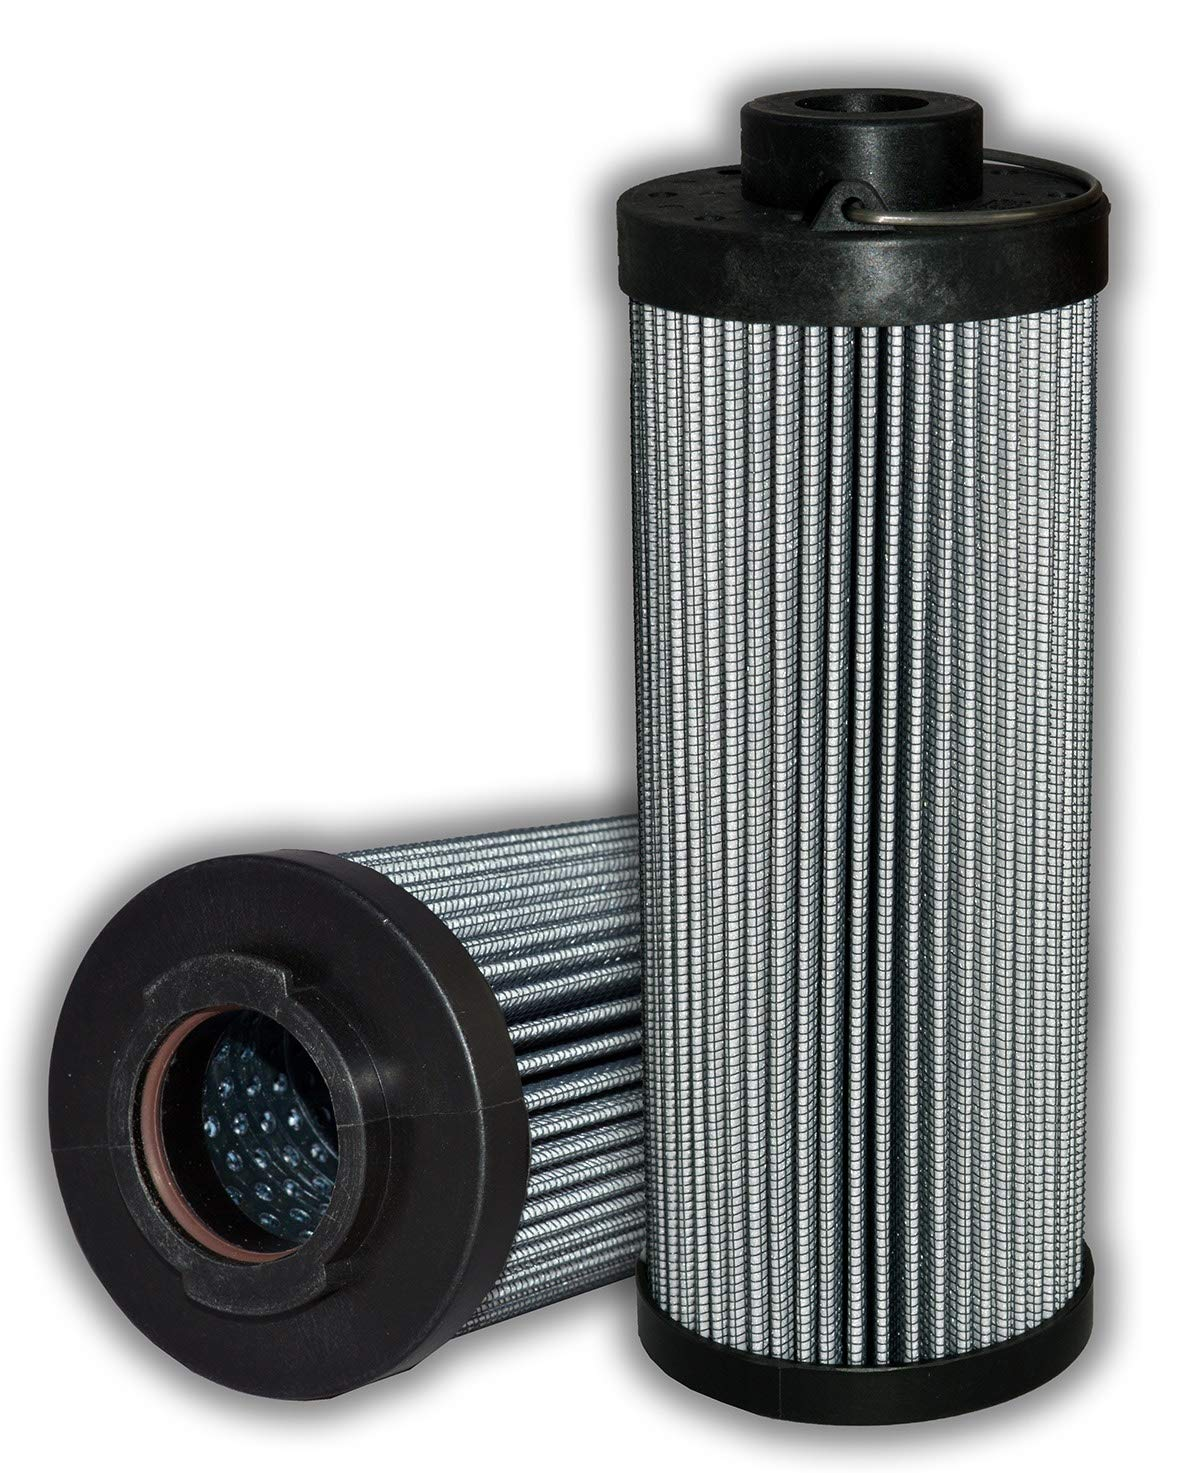 Parker 938279Q Replacement Hydraulic Filter from Big Filter Store